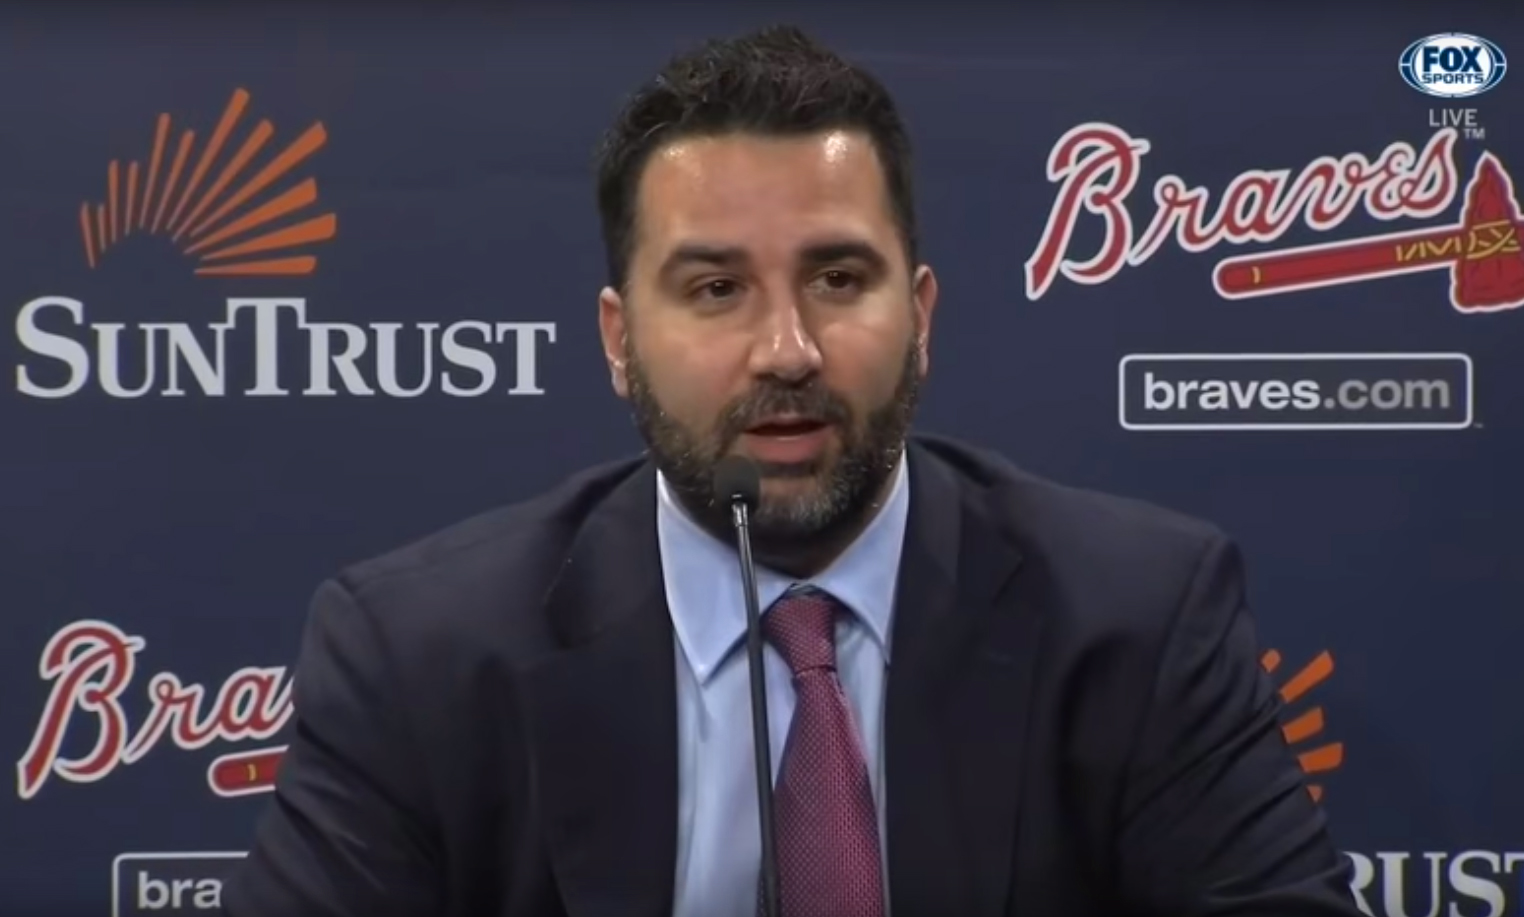 Aa-braves-presser-youtube